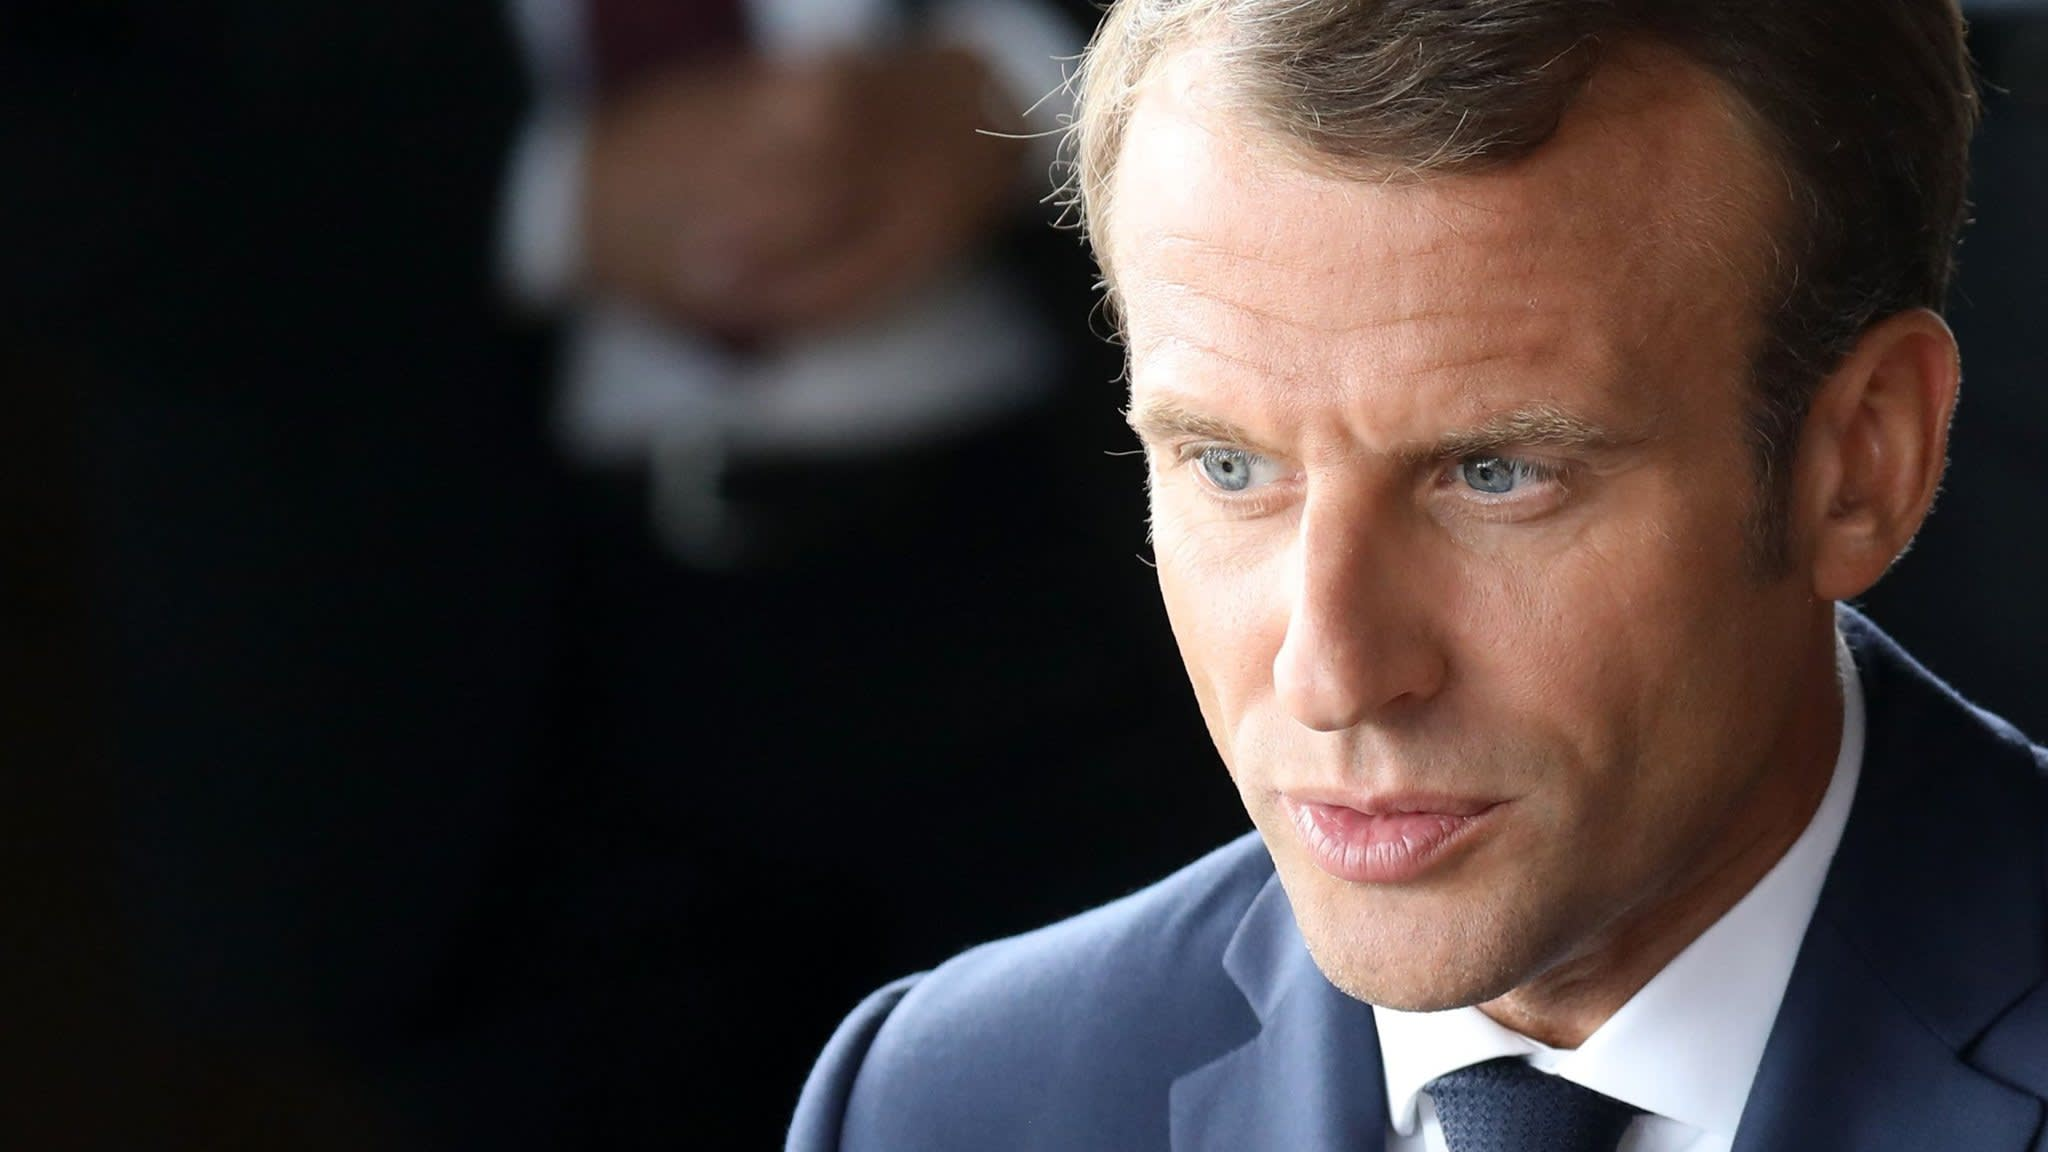 France's Macron faces fraught return after difficult summer